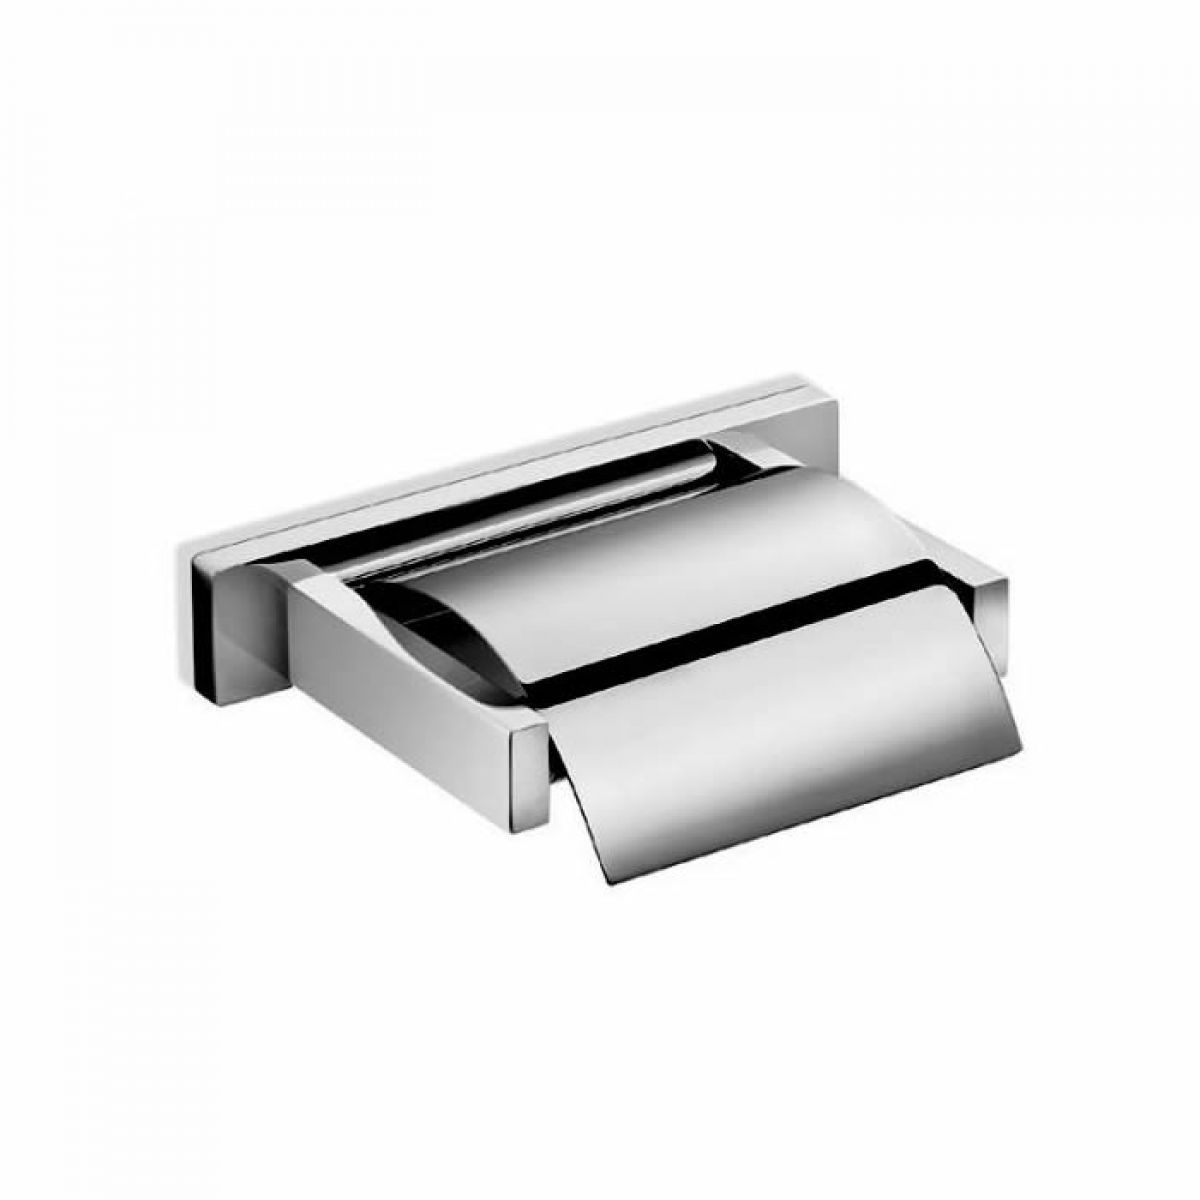 Inda Lea Square Toilet Roll Holder with Cover | Bathrooms ...